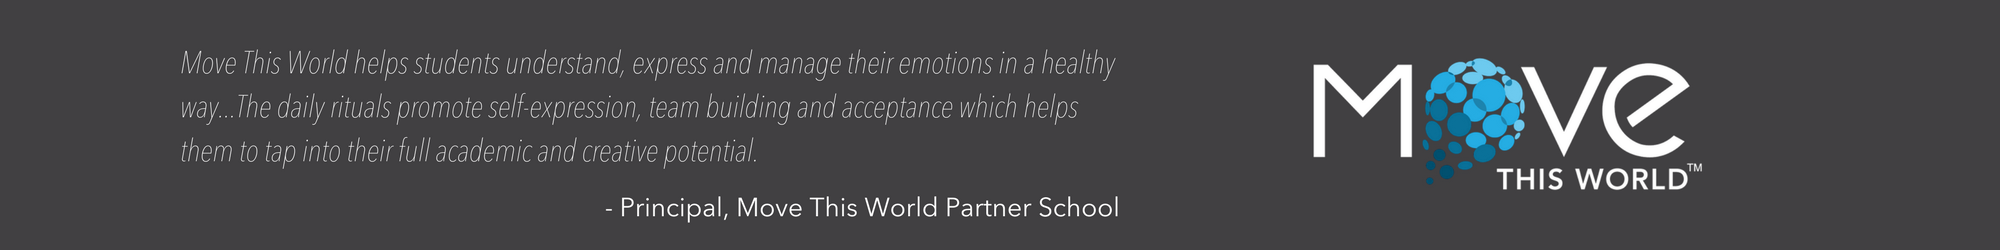 Move This World helps students understand, express and manage their emotions in a healthy way...The daily rituals promote self-expression, team building and acceptance which helps them to tap into their full academic (1).png